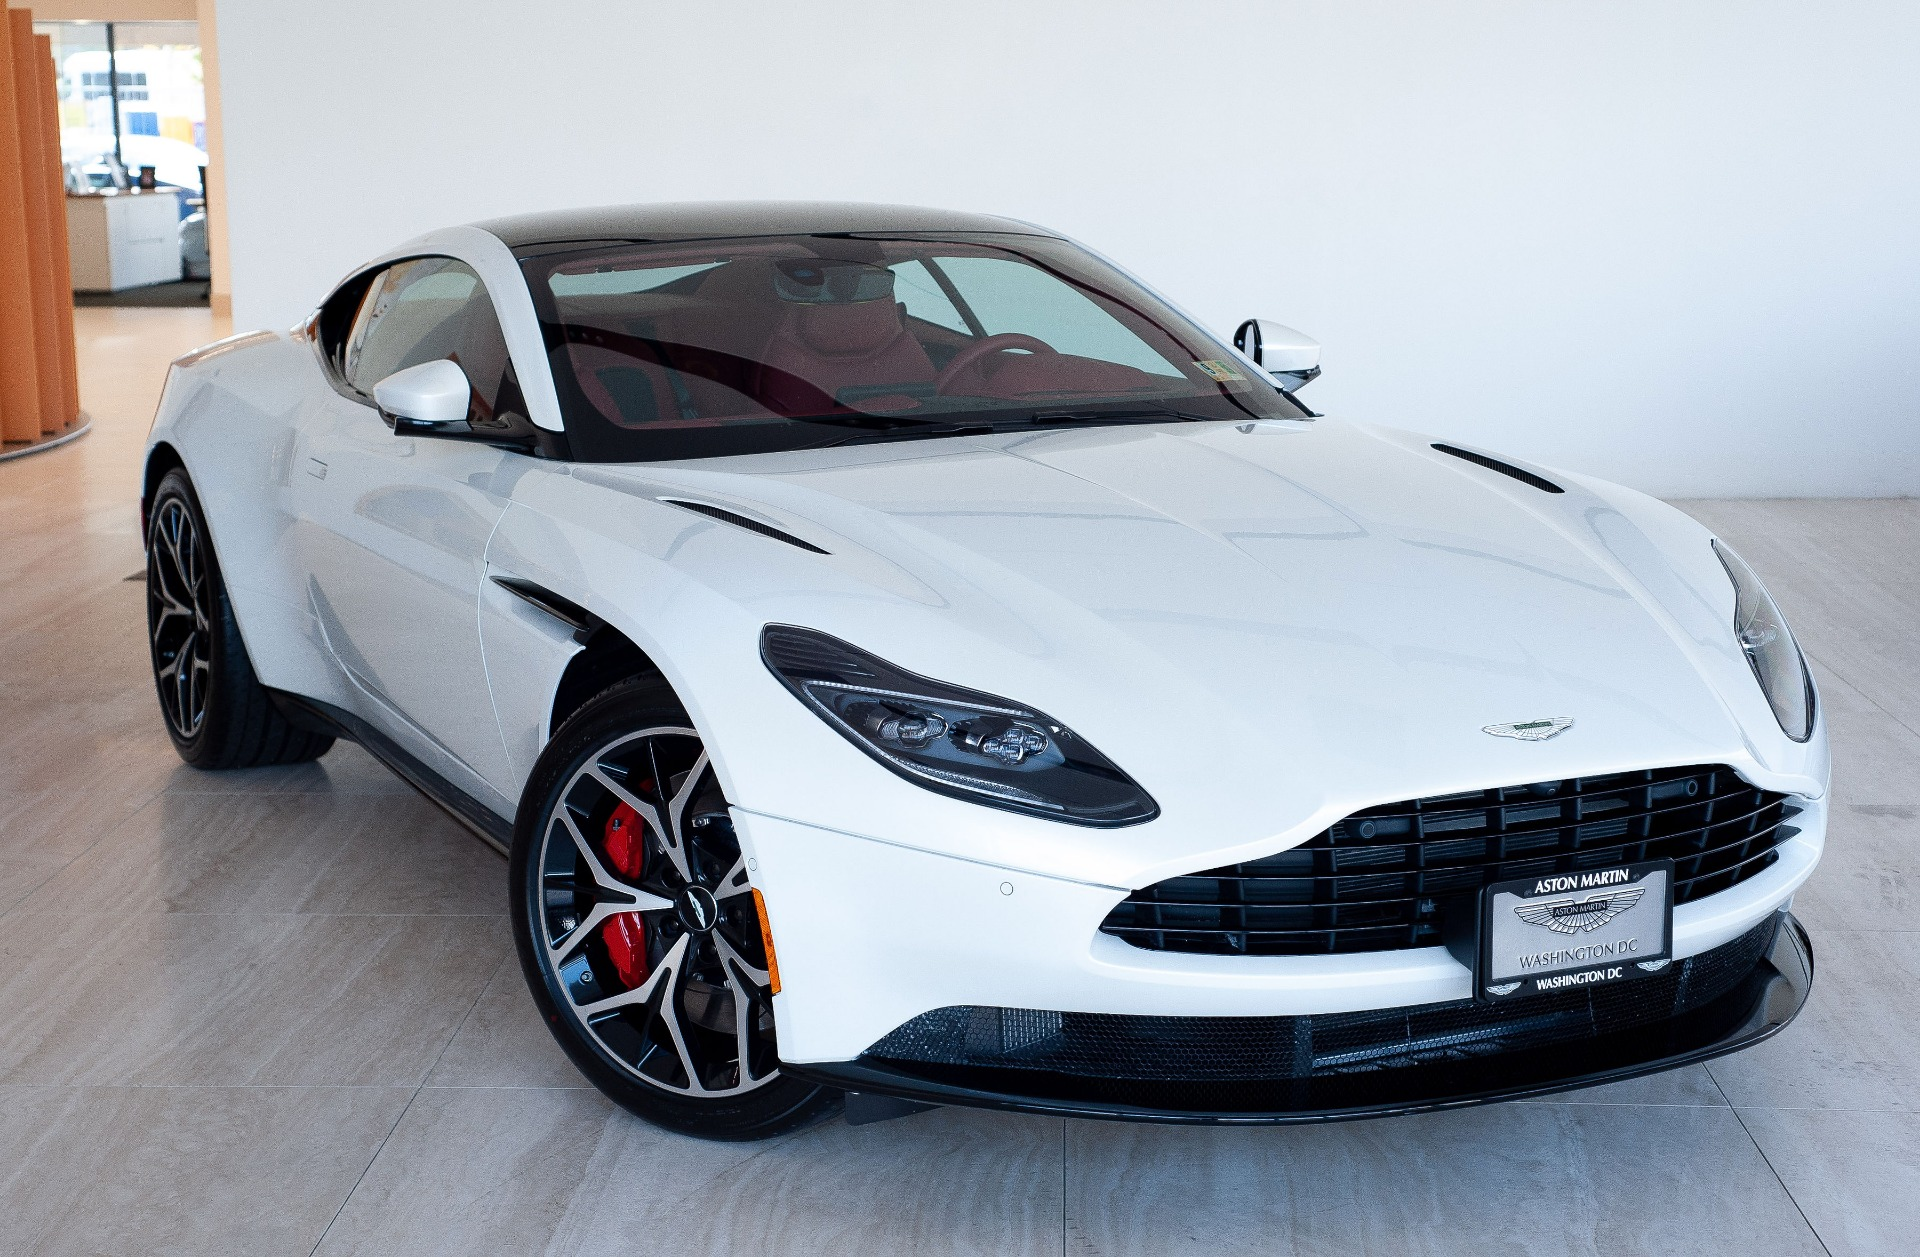 2019 Aston Martin Db11 V8 Stock 9nl06535 For Sale Near Vienna Va Va Aston Martin Dealer For Sale In Vienna Va 9nl06535 Exclusive Automotive Group